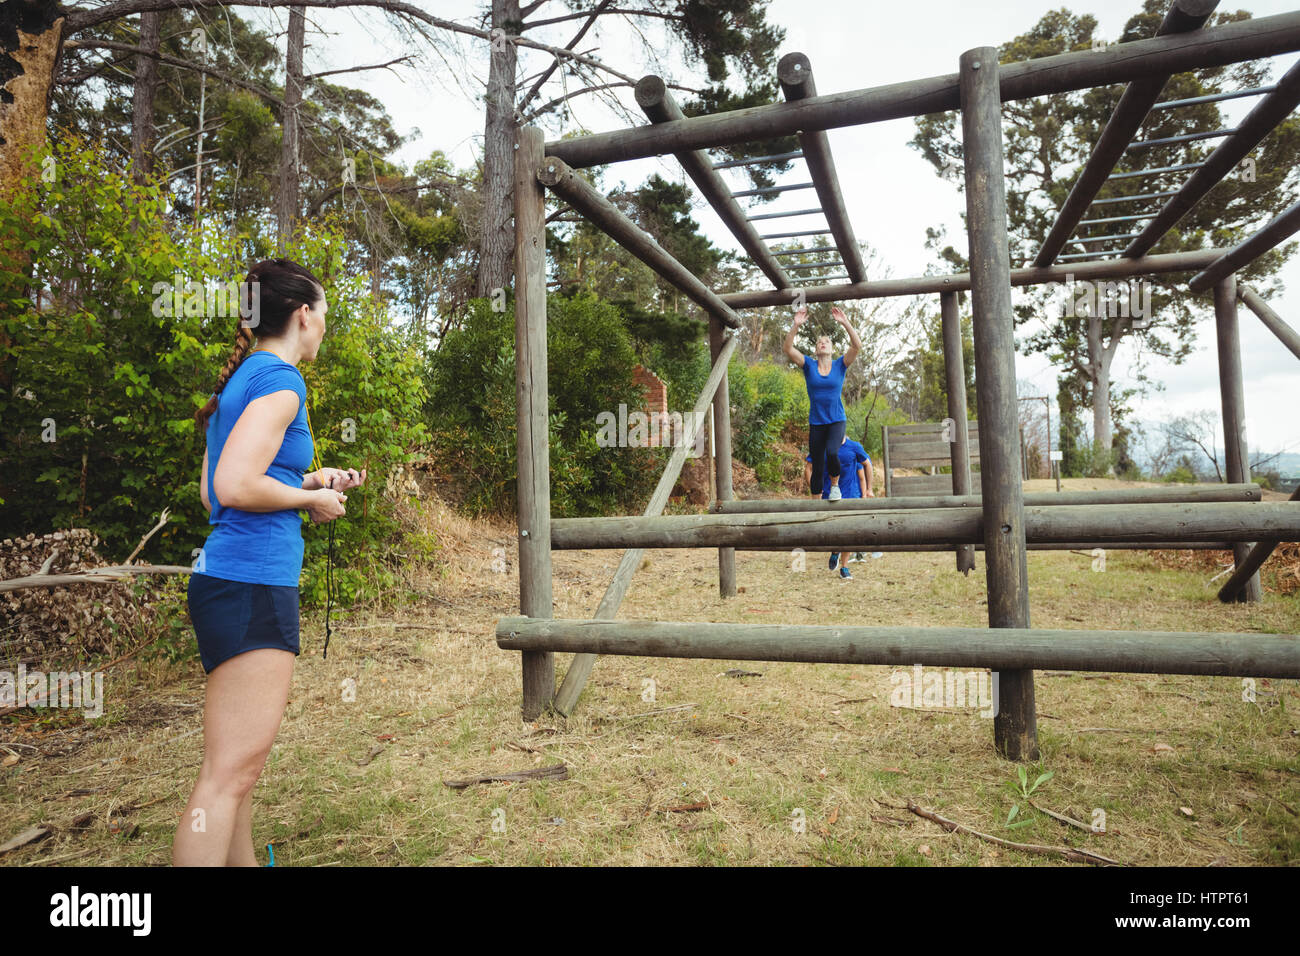 Monkey Bars, Exercise Imágenes De Stock & Monkey Bars, Exercise ...